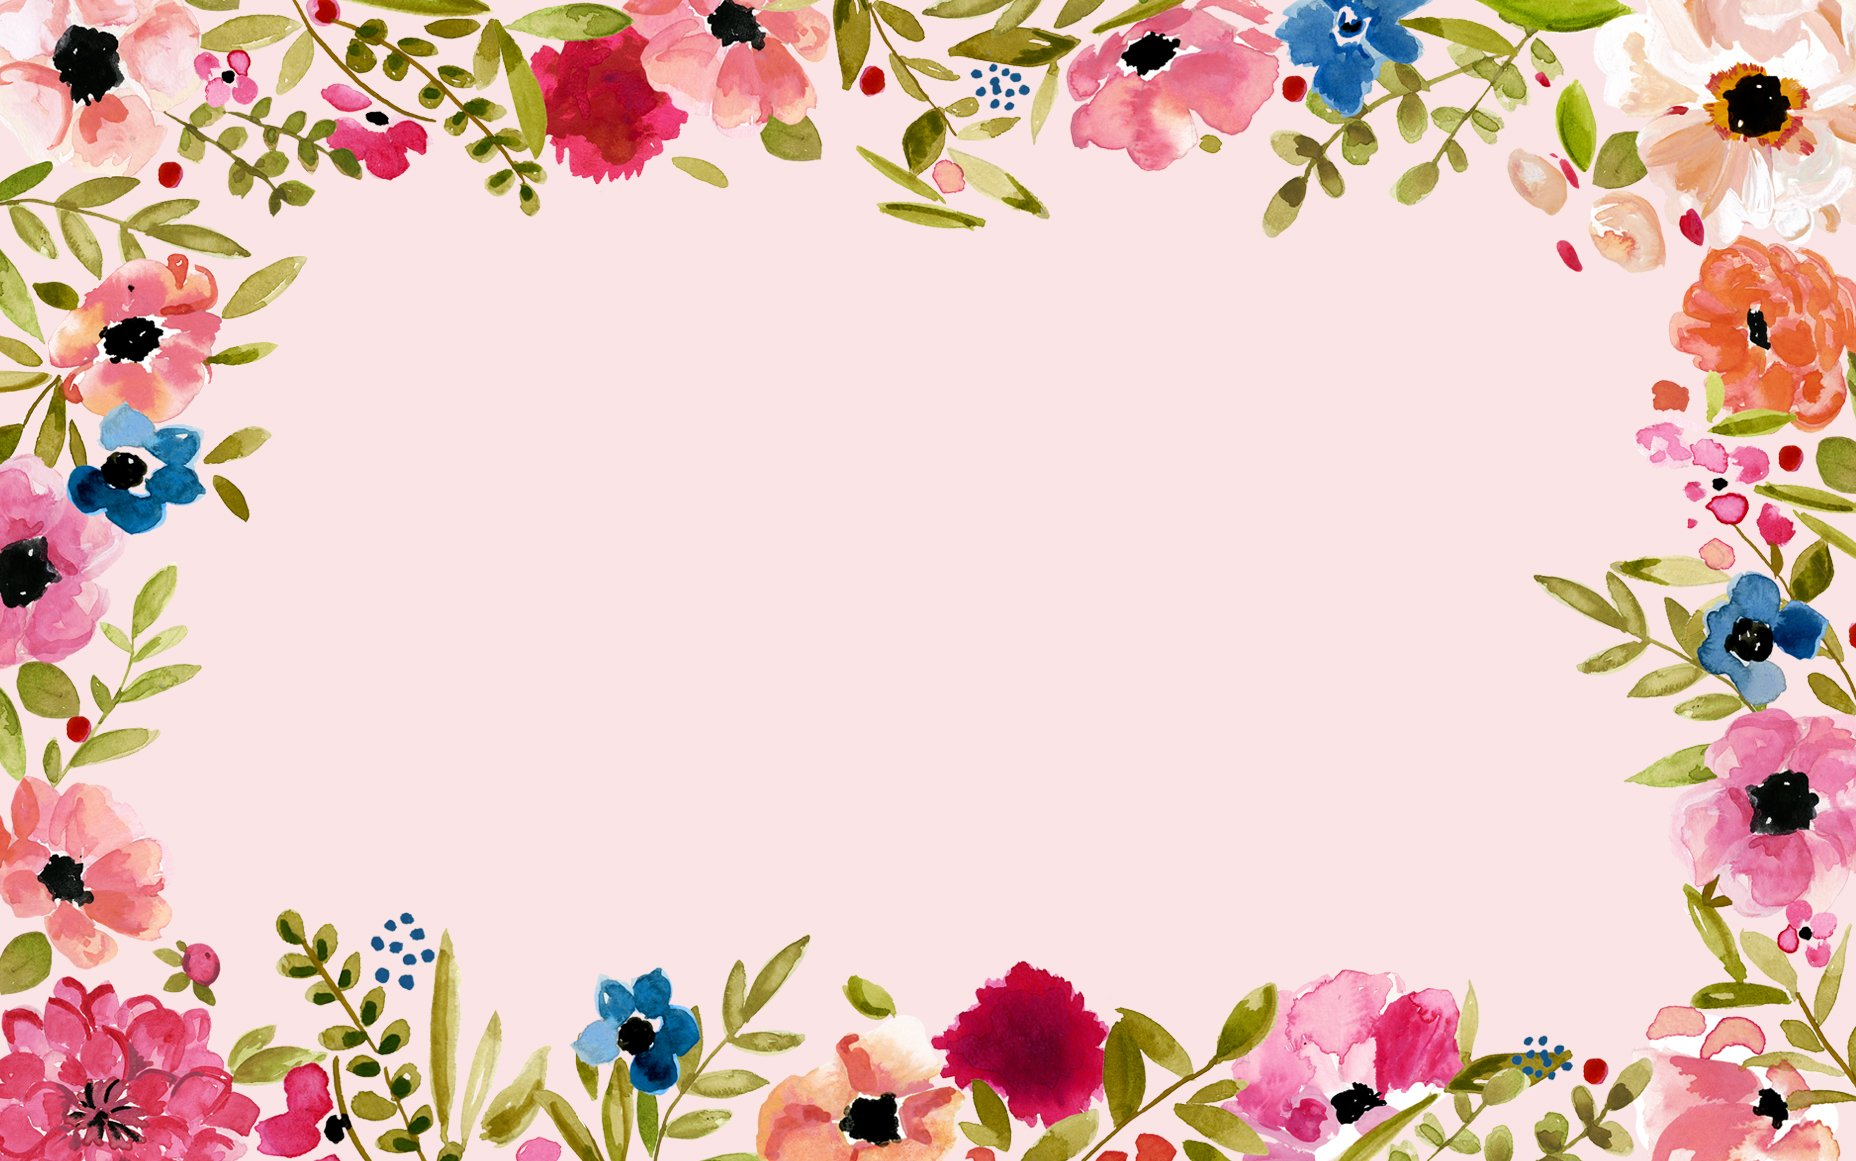 Floral Border Wallpaper and Background Image  1856x1161